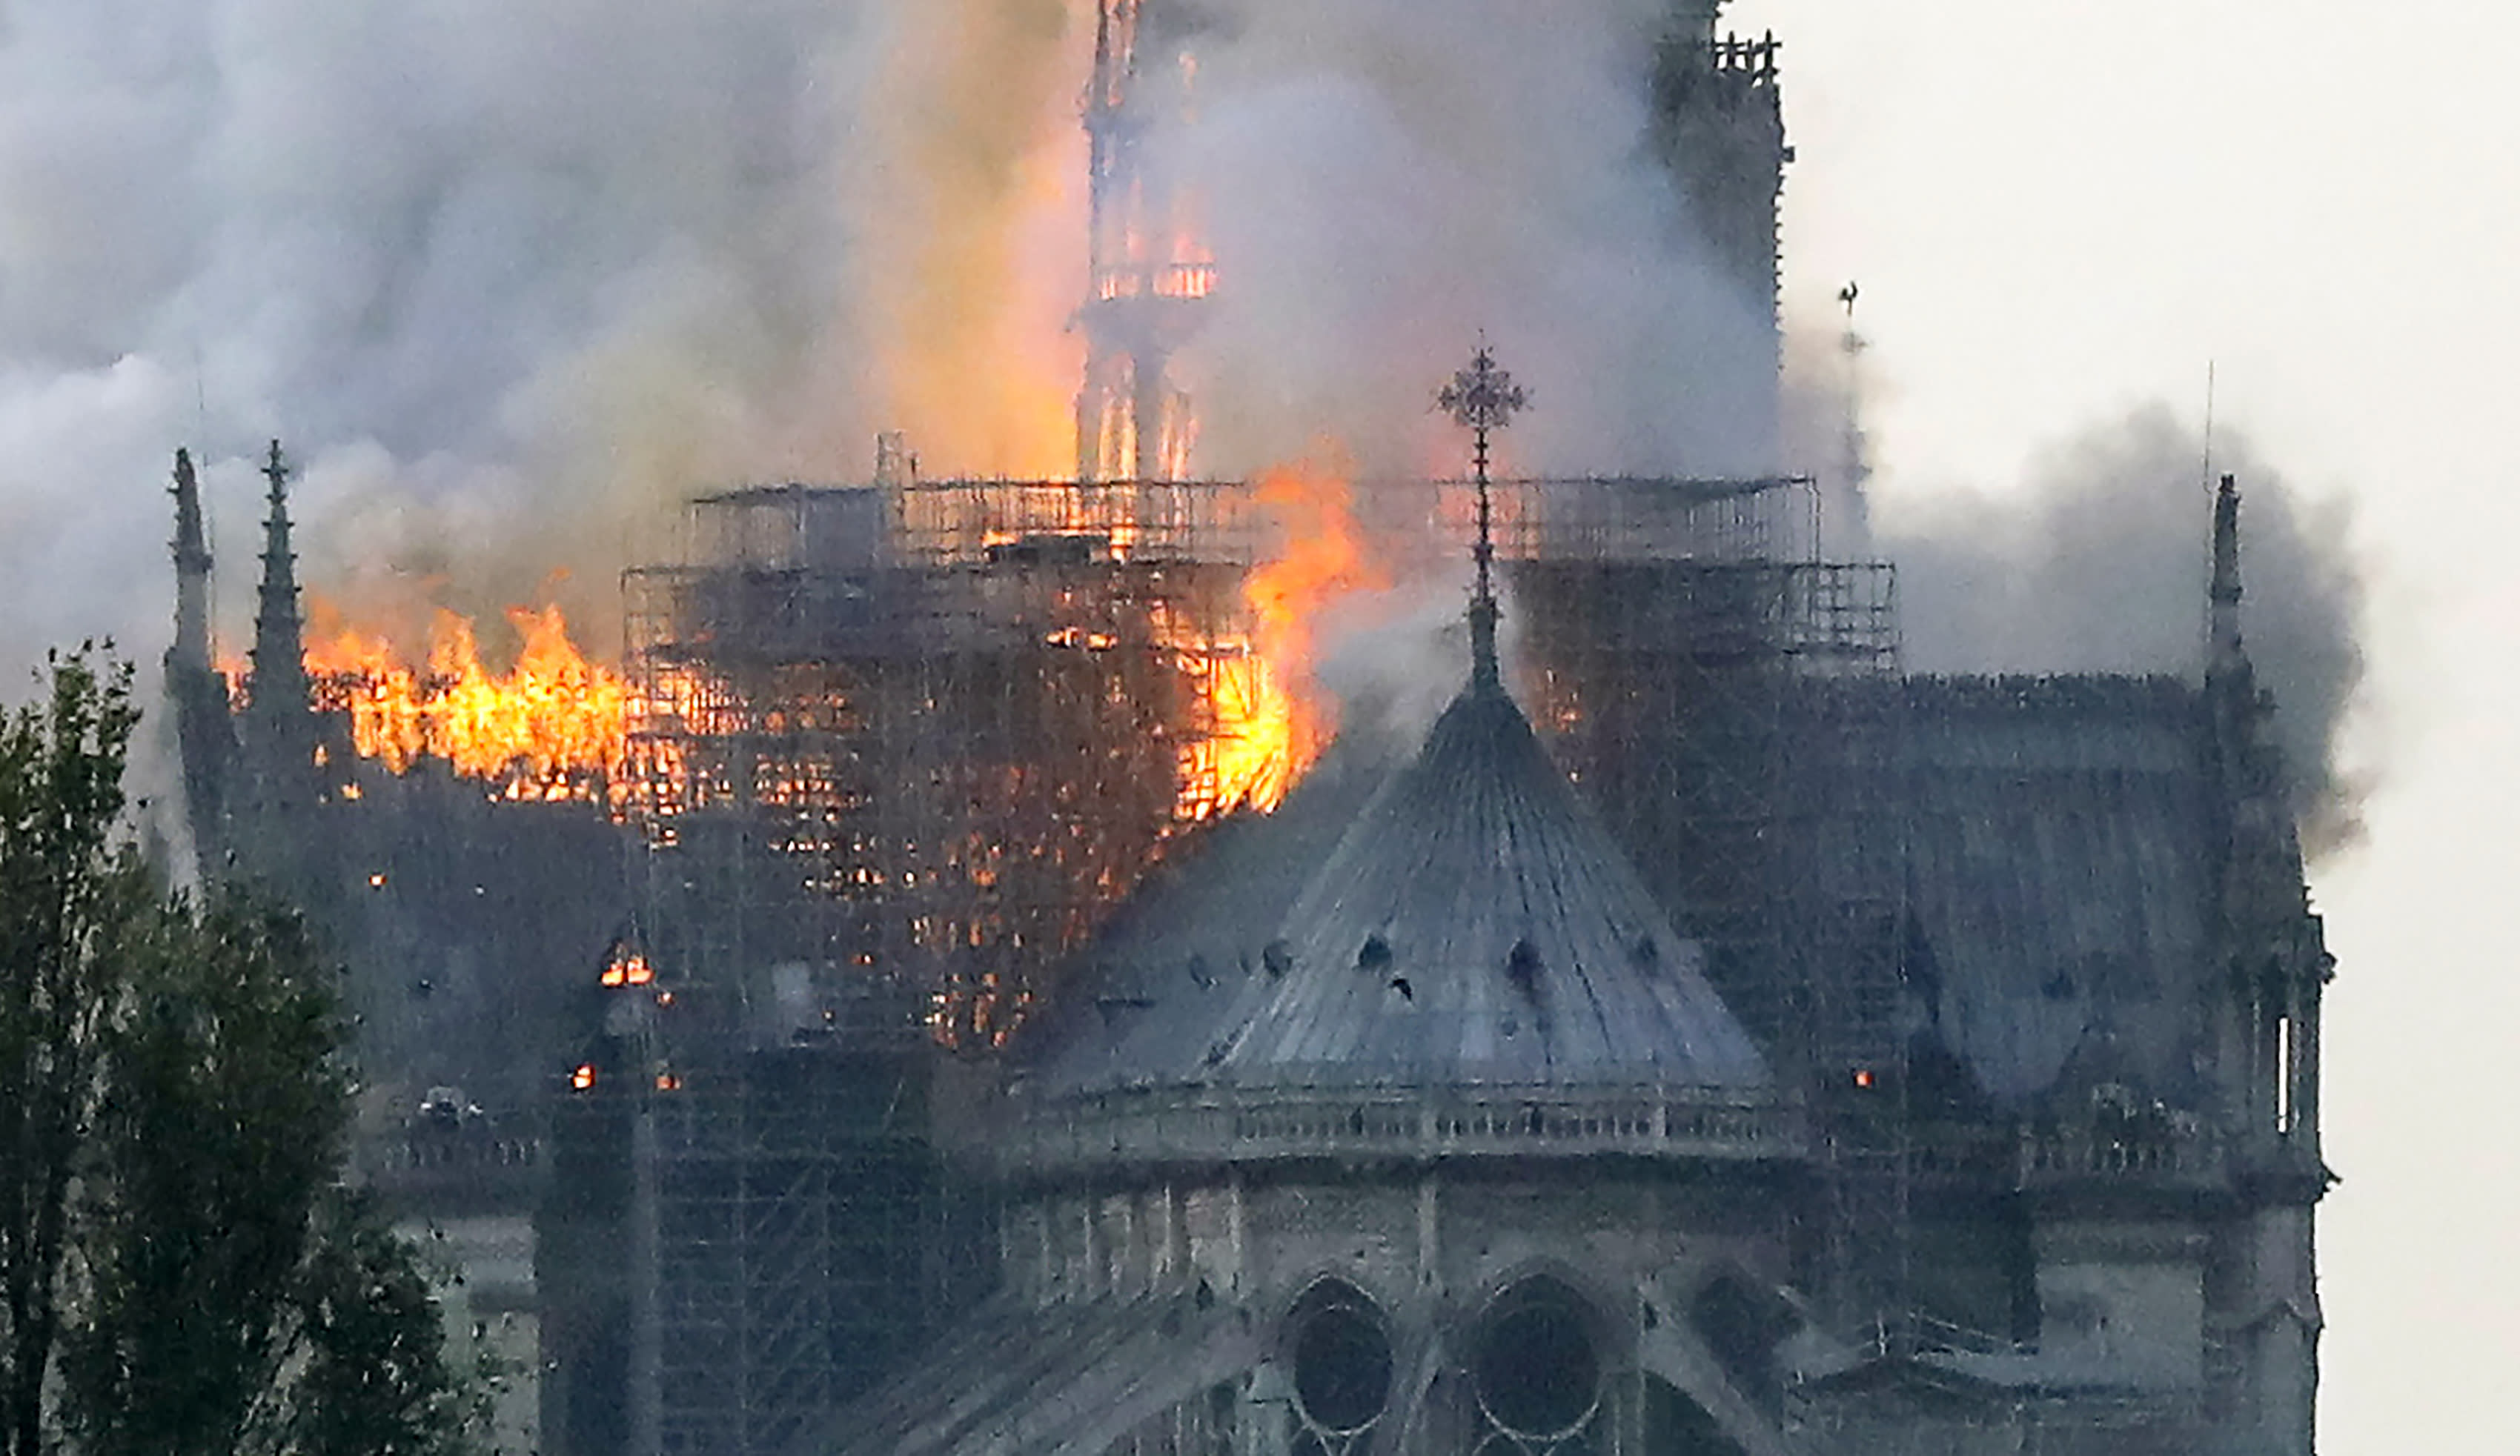 <p>Flames rise during a fire at the landmark Notre Dame Cathedral in central Paris on April 15, 2019 afternoon, potentially involving renovation works being carried out at the site, the fire service said. (Photo credit by FRANCOIS GUILLOT/AFP/Getty Images) </p>